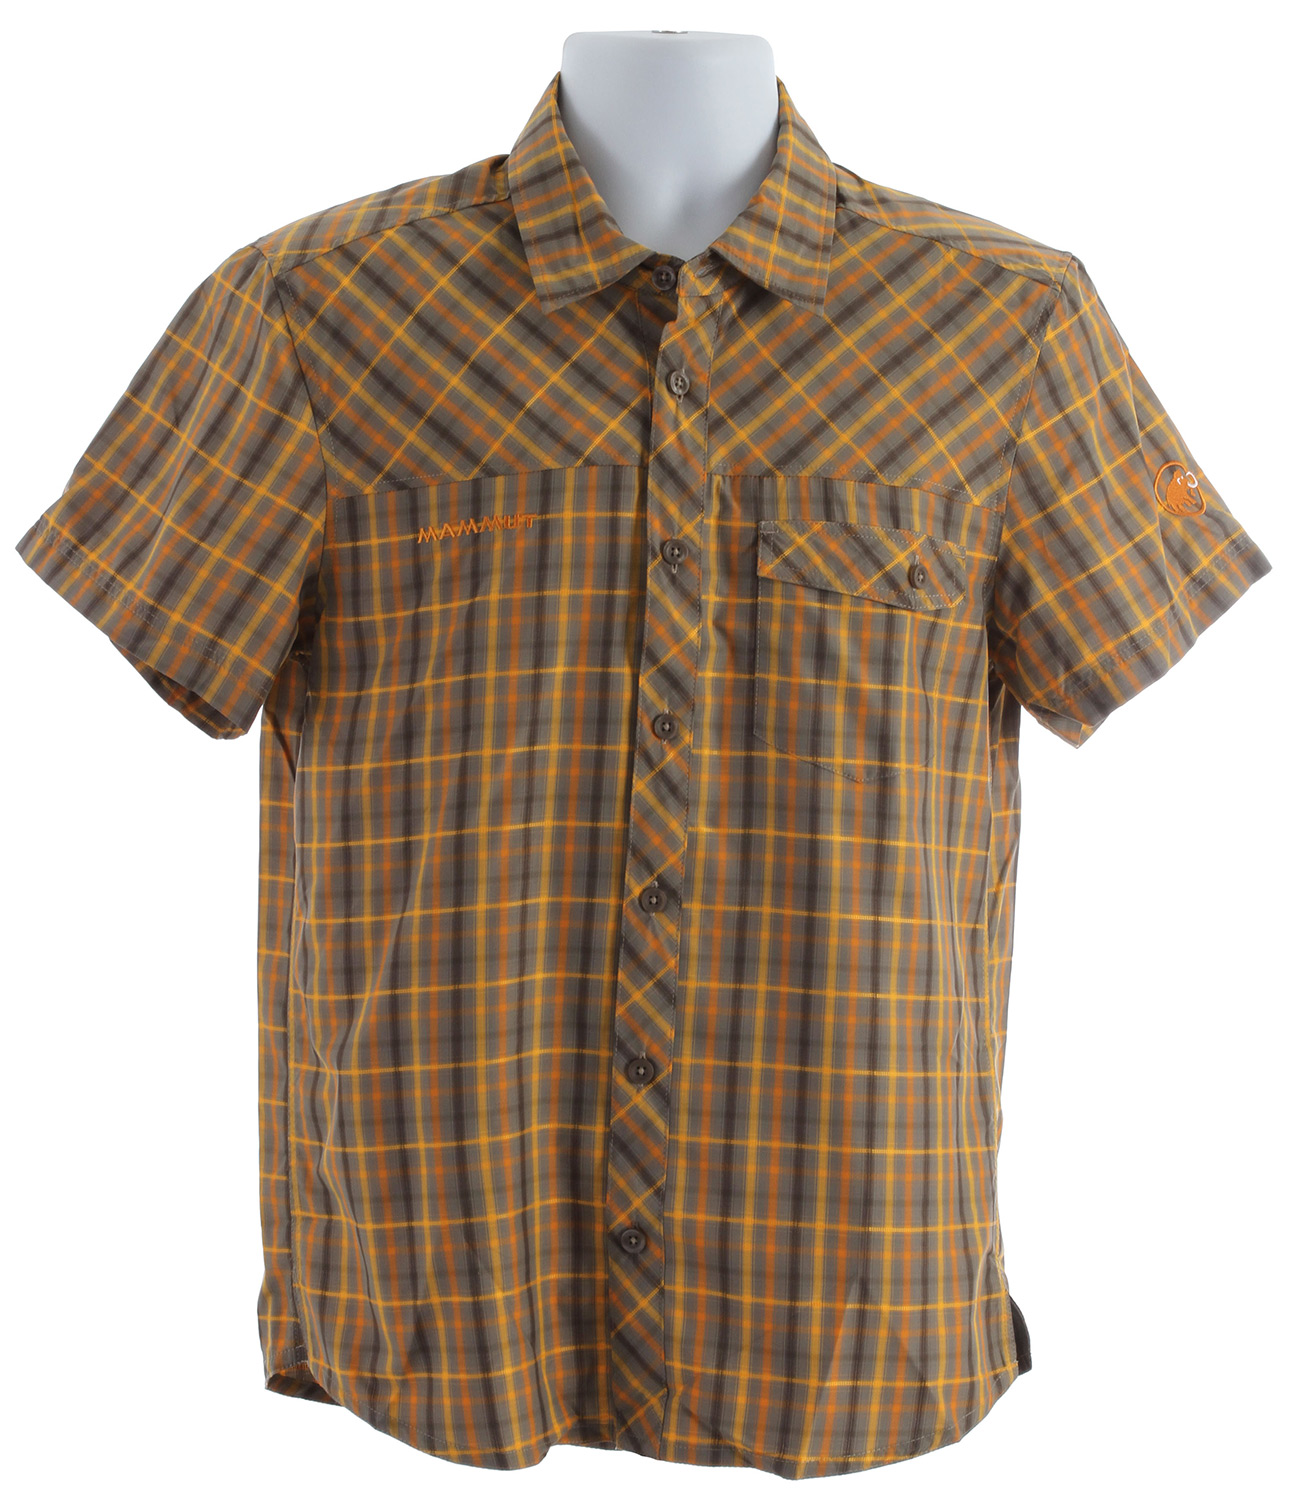 Camp and Hike Mammut Asko Shirt Oak/Lion - $44.95